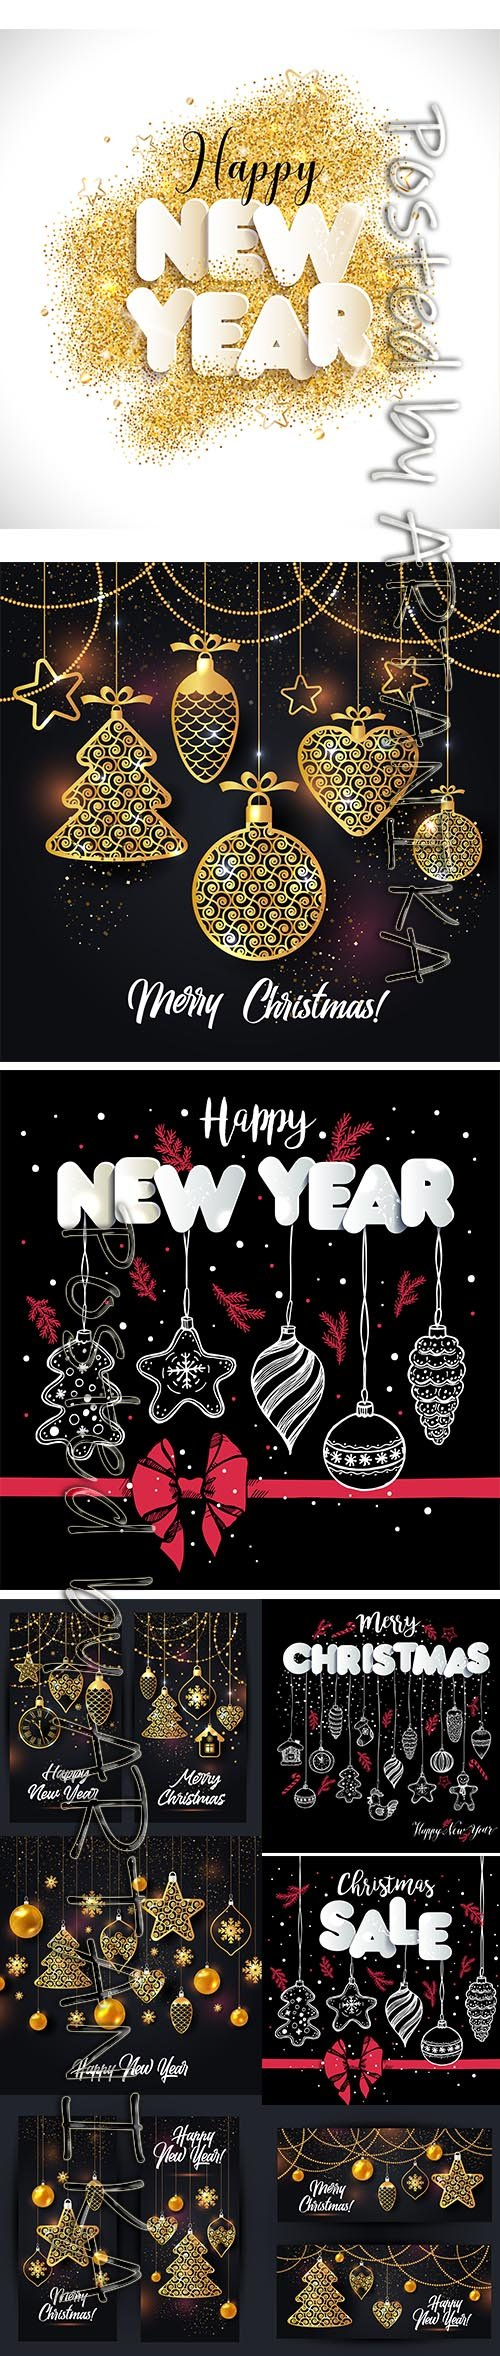 Vector Illustration Set Christmas and New Year Backgrounds